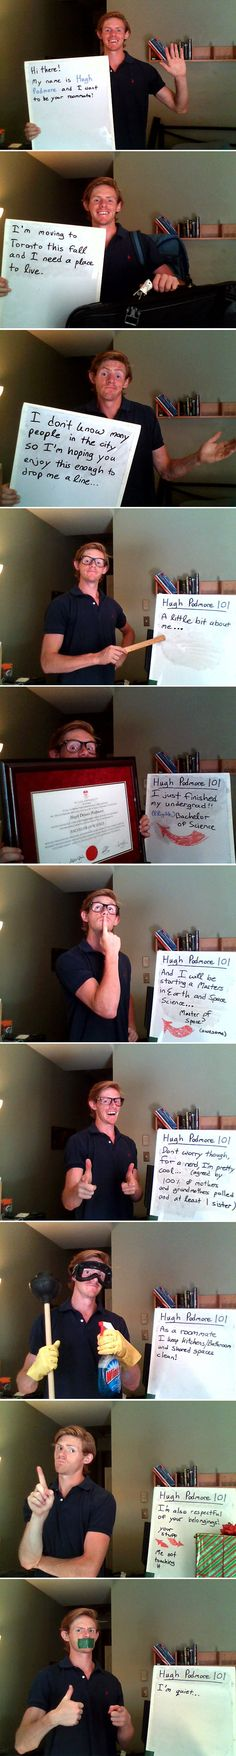 Very clever! Guy looking for a roommate.  Betcha $100 he's found one already!